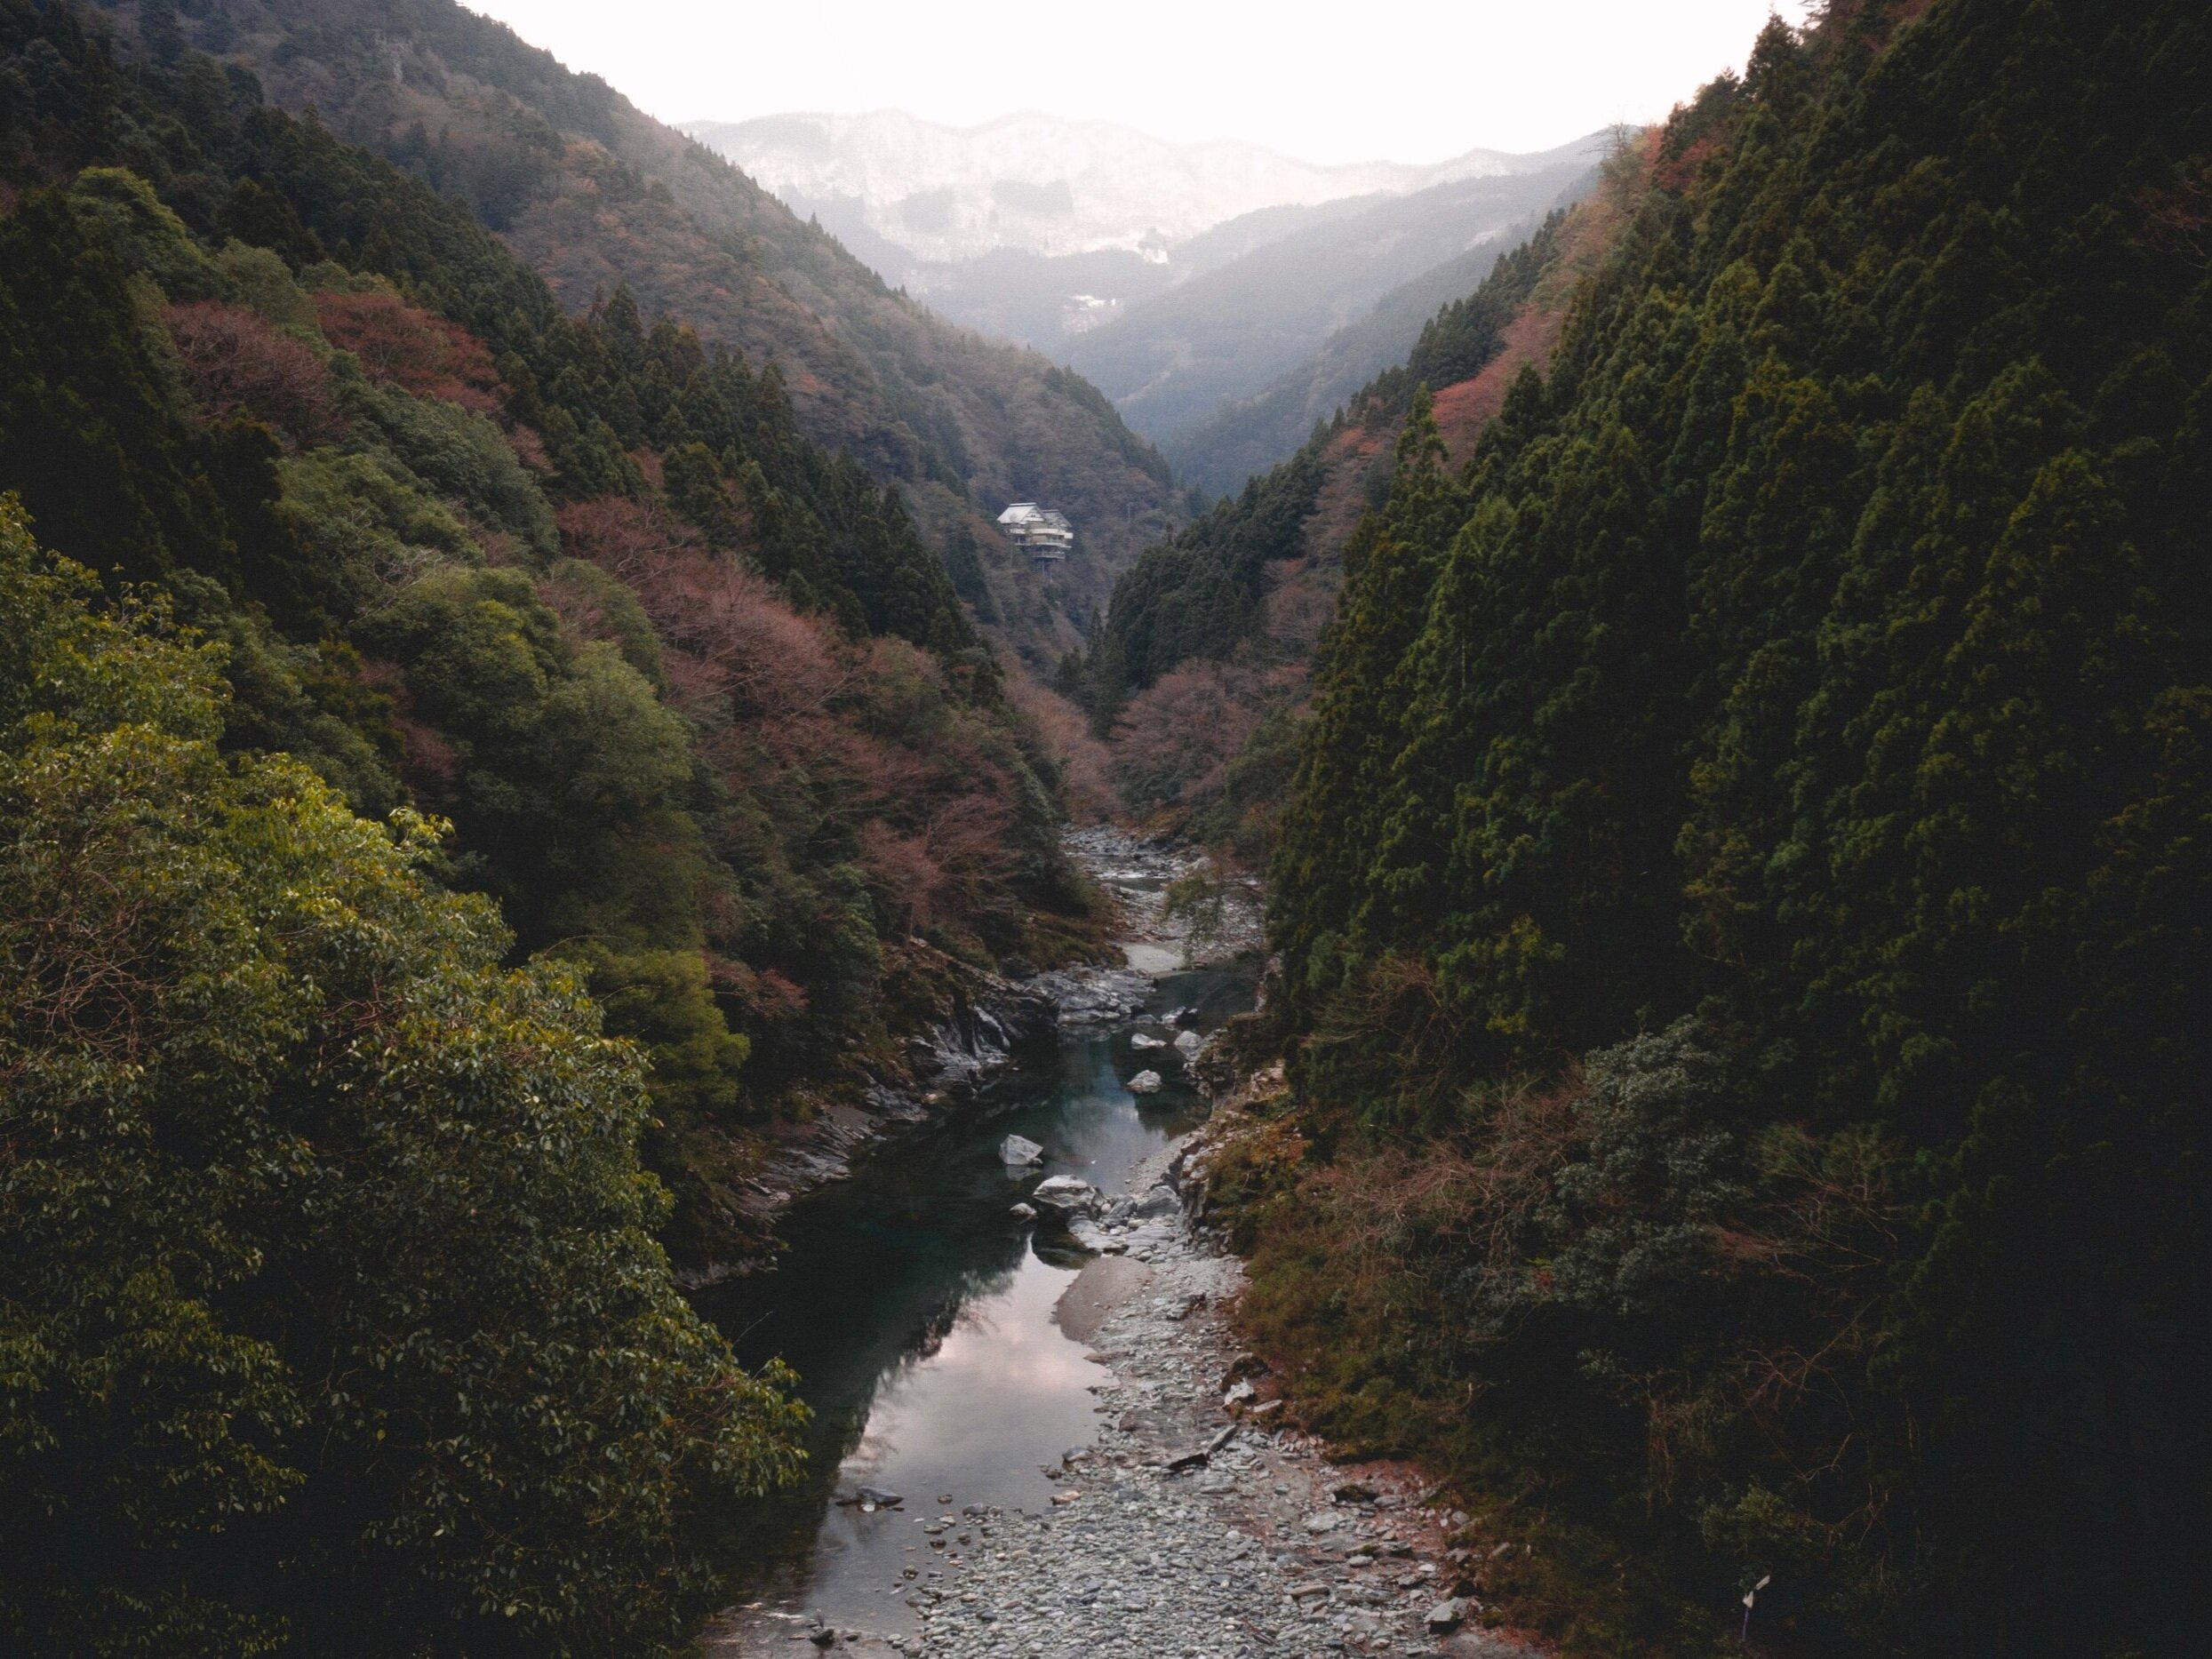 The Iya Valley and the Oboke Gorge on the smallest of Japan's four main islands, Shikoku.